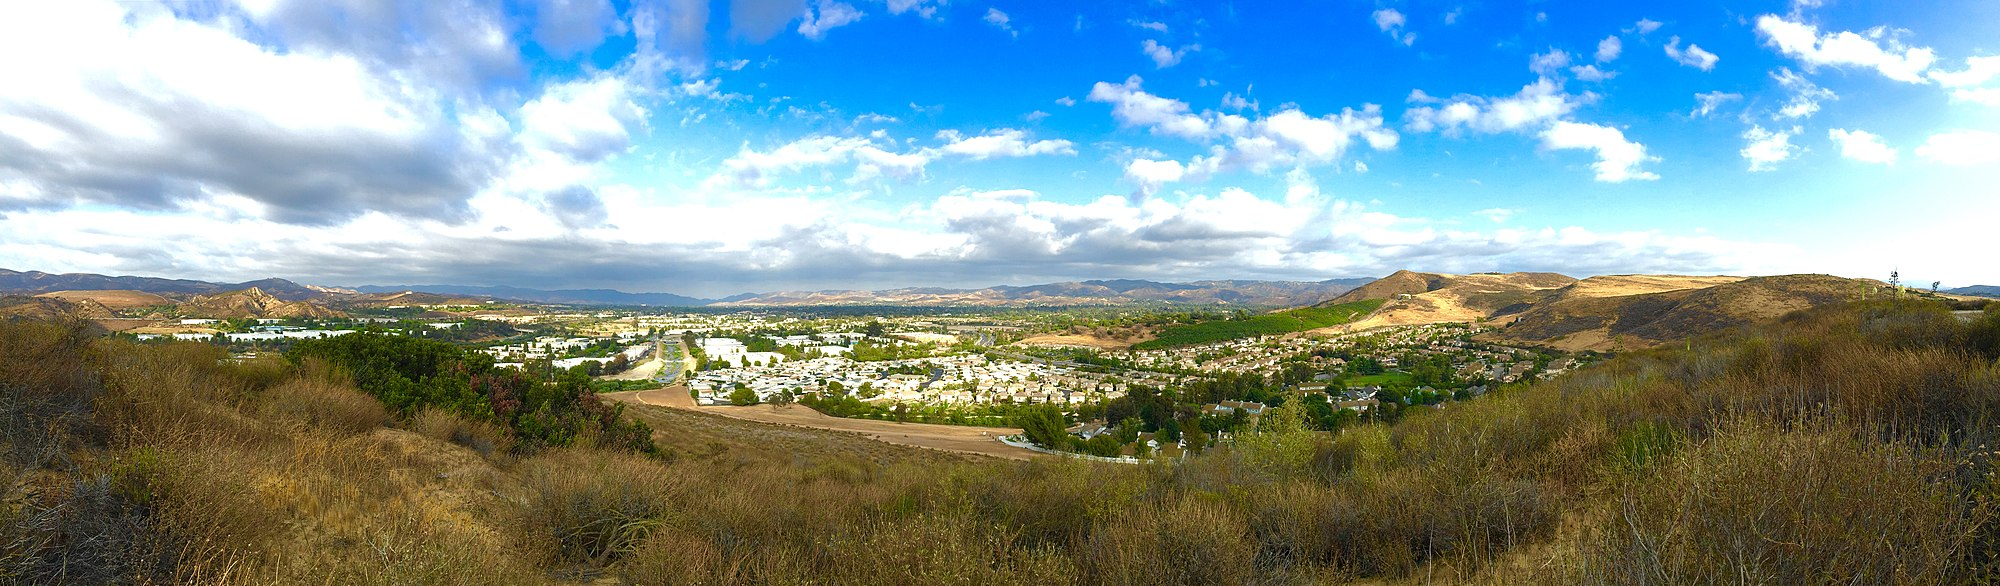 Simi Valley, California - Wikiwand